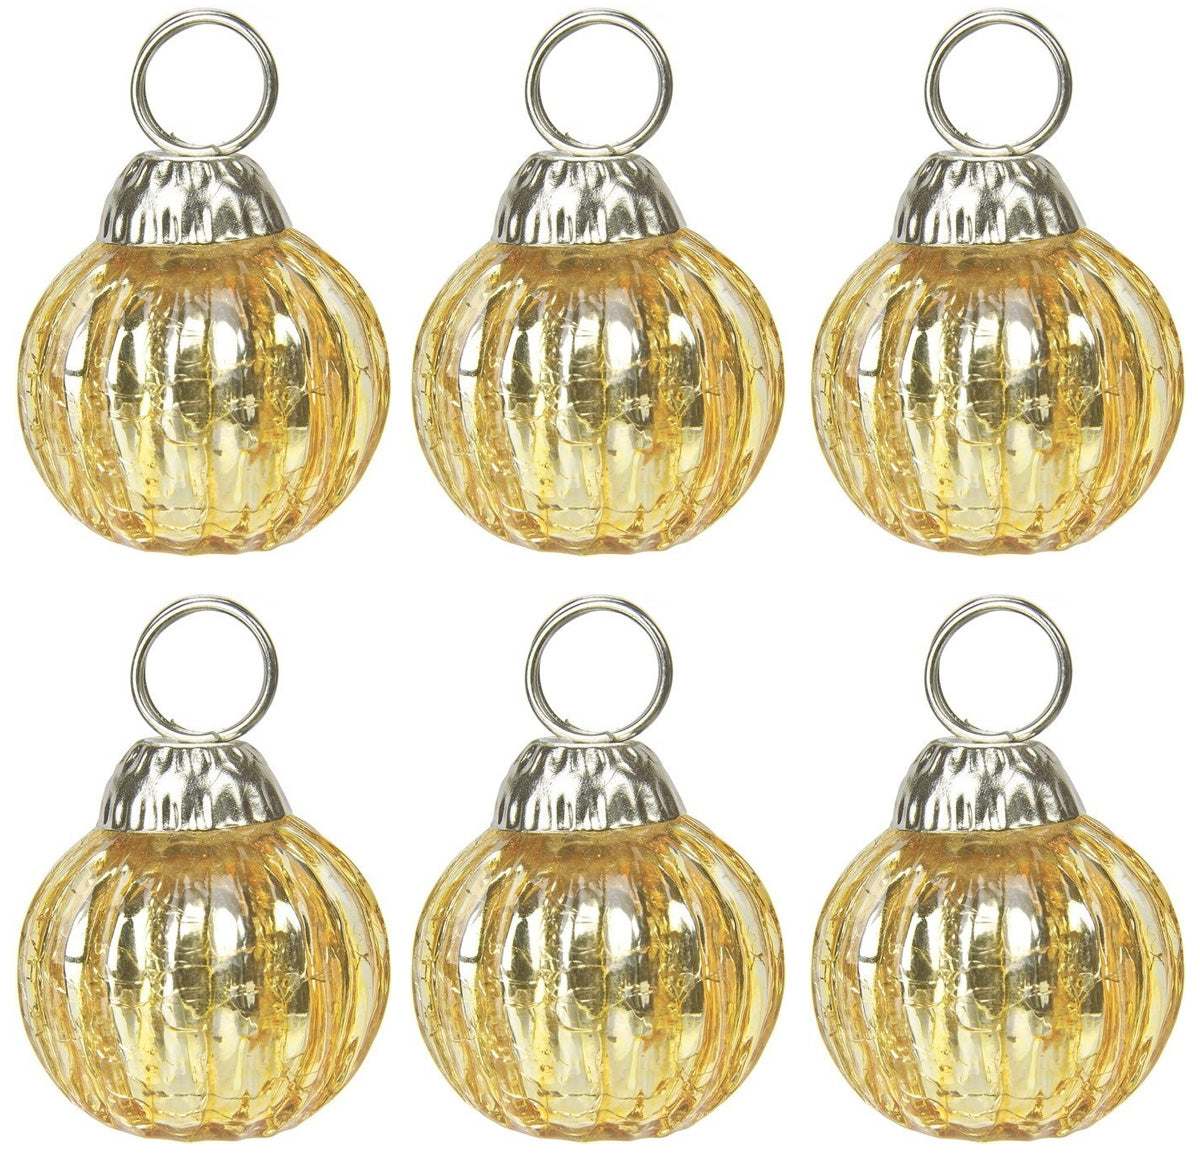 BLOWOUT 6 Pack | Mini Glass Bauble Place Card Holder (1.25-Inch, Gold, Set of 6) - For Home Decor and Wedding Tabletops